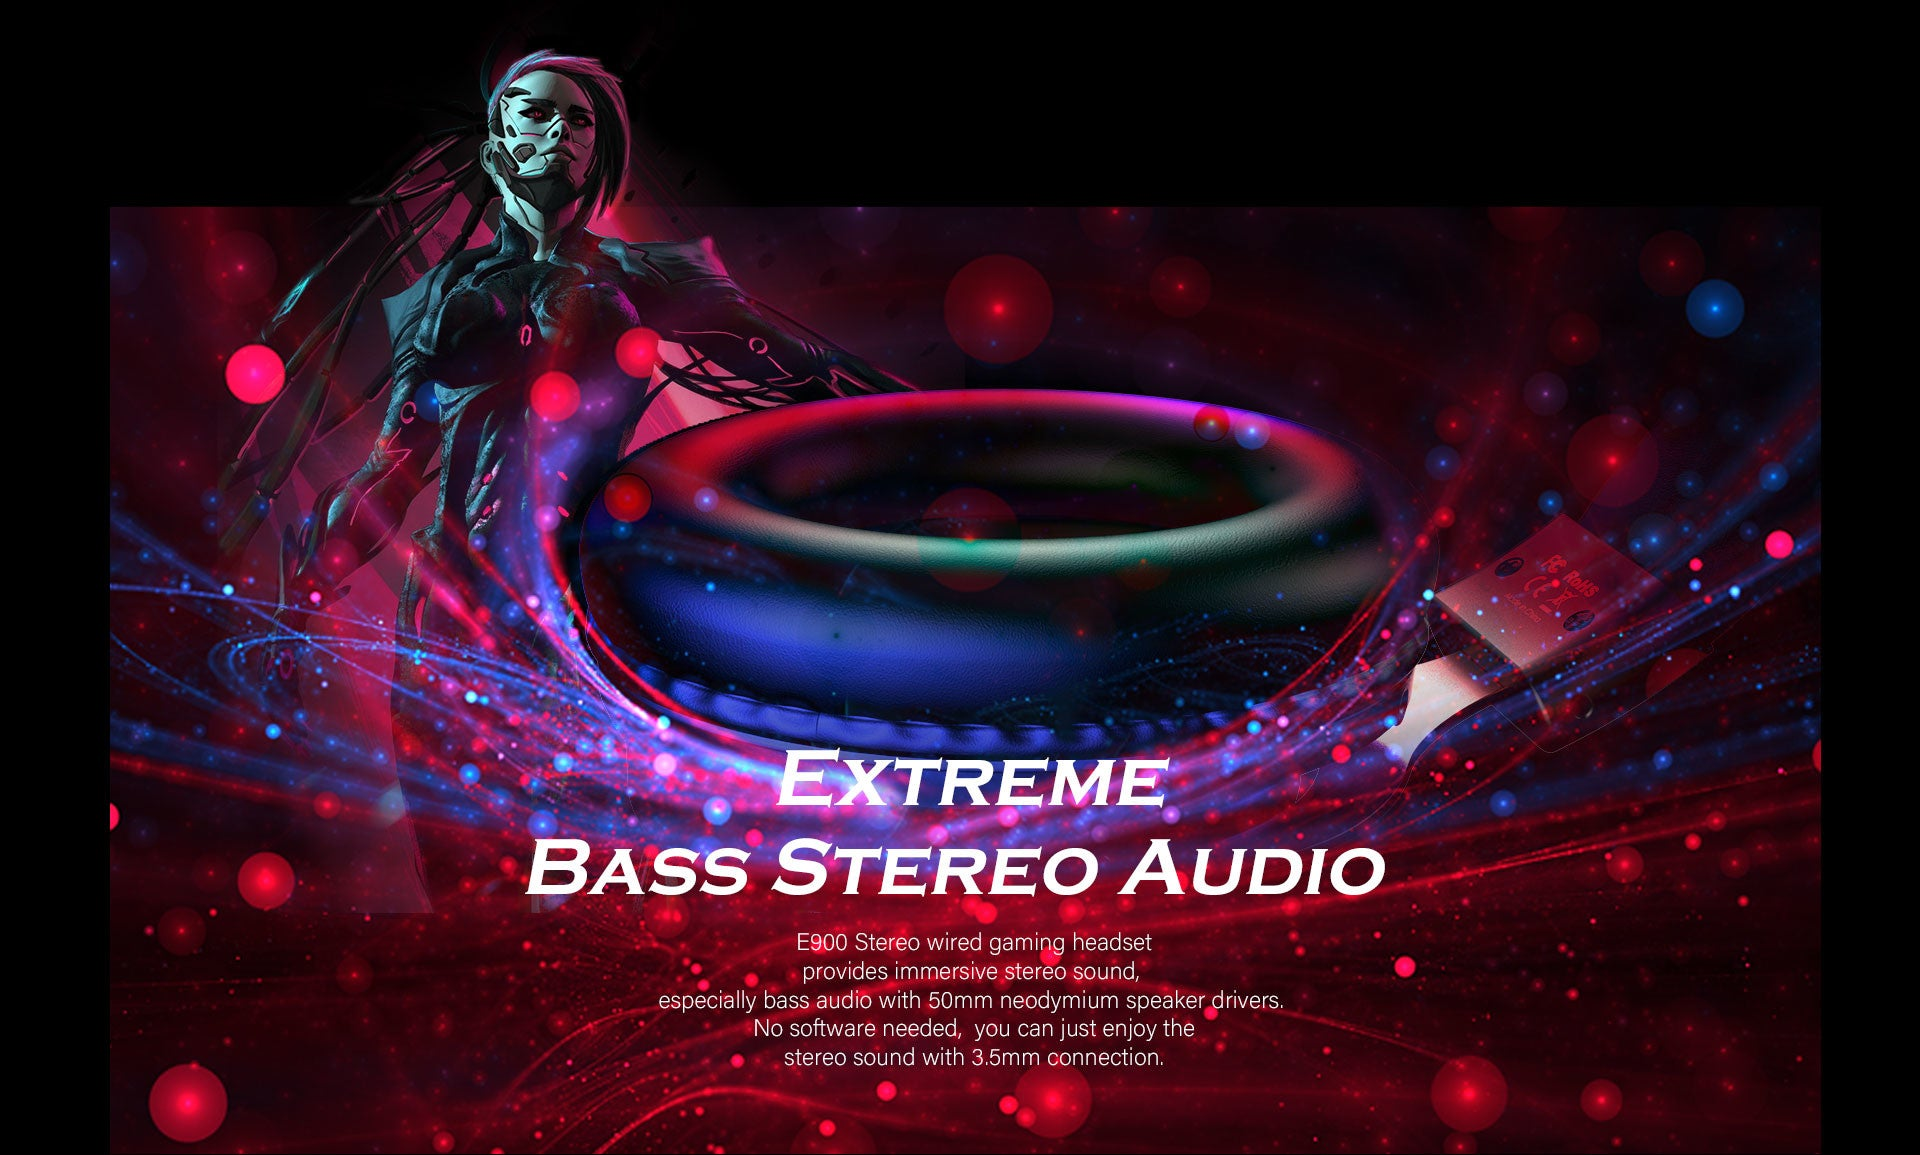 E900 Stereo wired gaming headset  provides immersive stereo sound,  especially bass audio with 50mm neodymium speaker drivers.